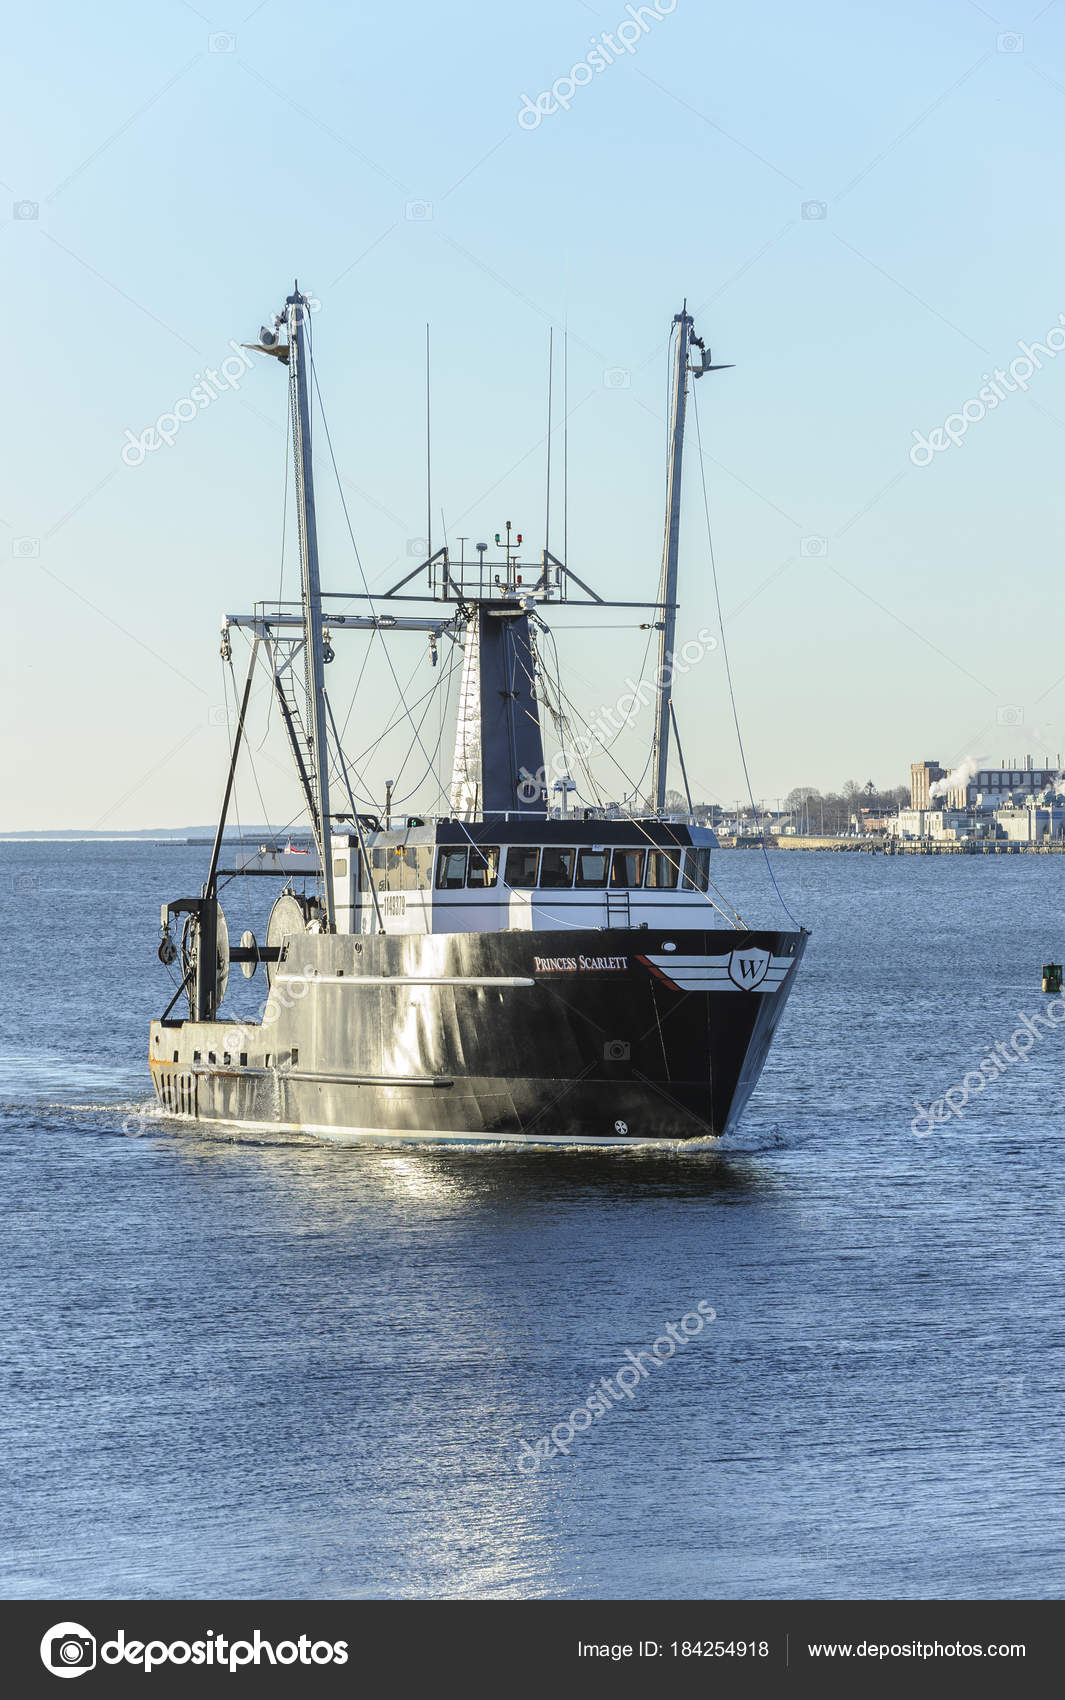 Commercial fishing boat Princess Scarlett, hailing port Cape